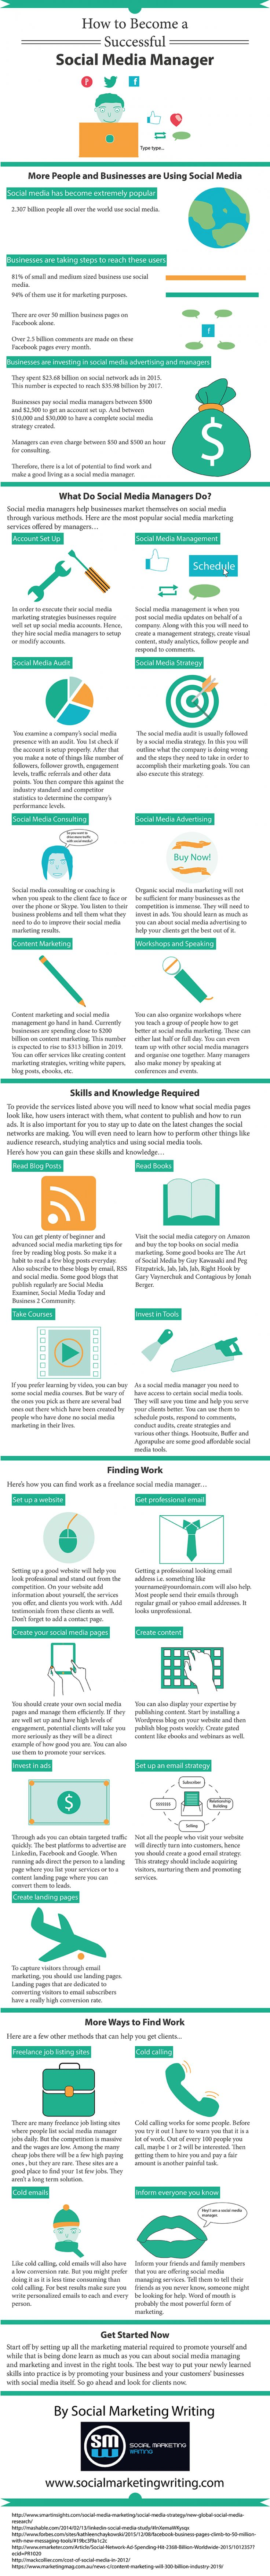 How to Become a Successful Social Media Manager [Infographic] | Social Media…  www.electricturtles.com/collections